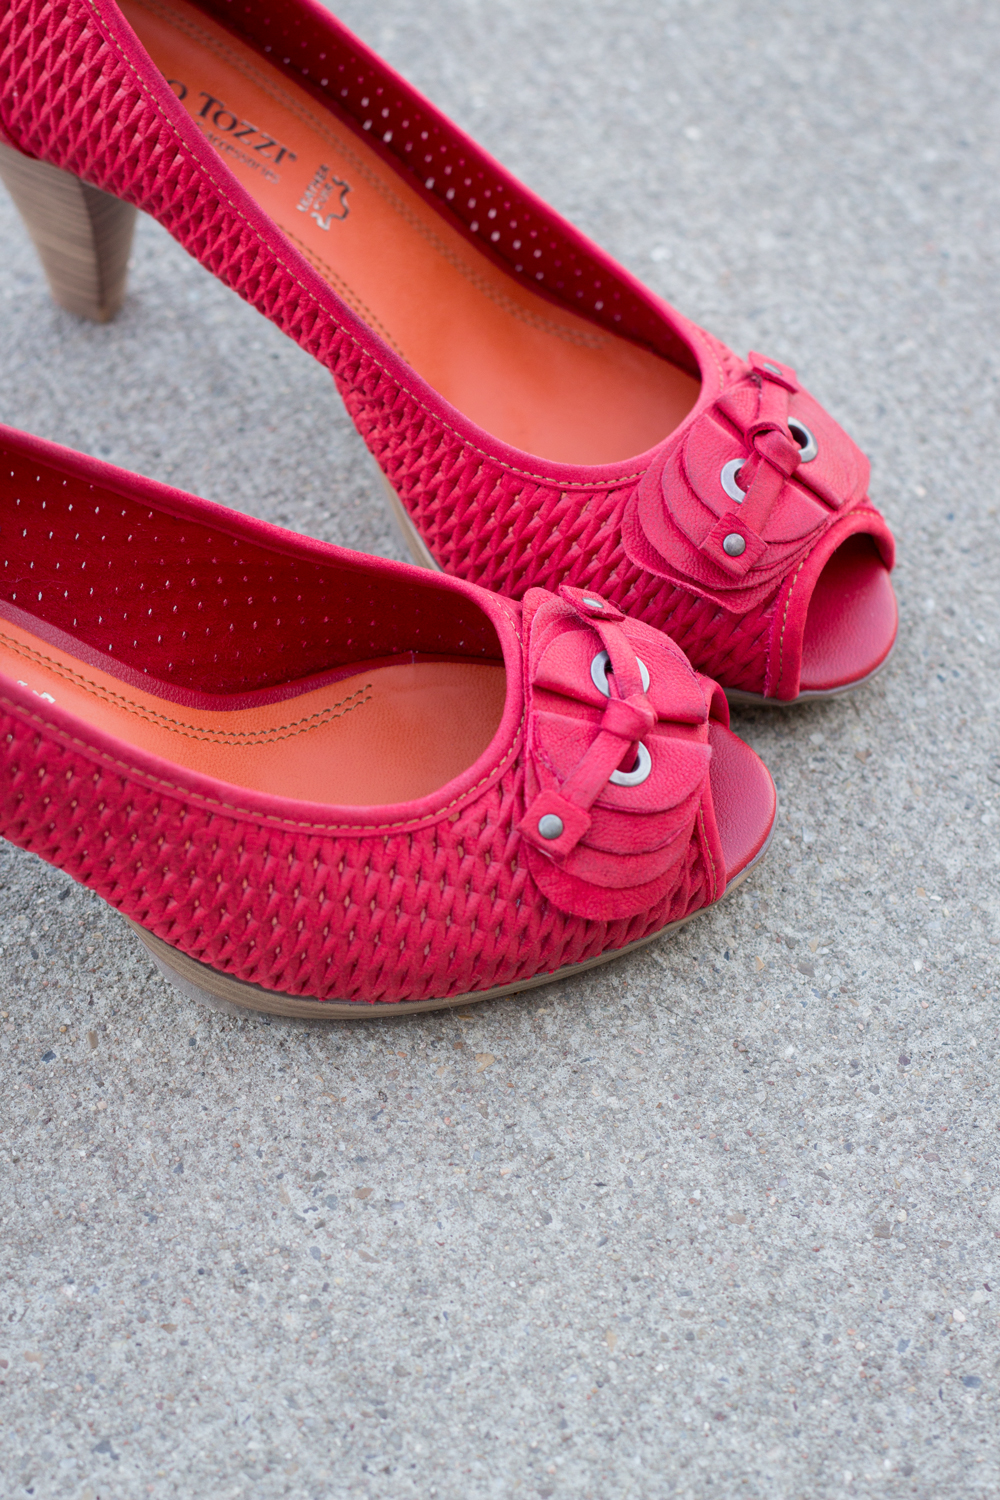 red peep toes from Marco Tozzi